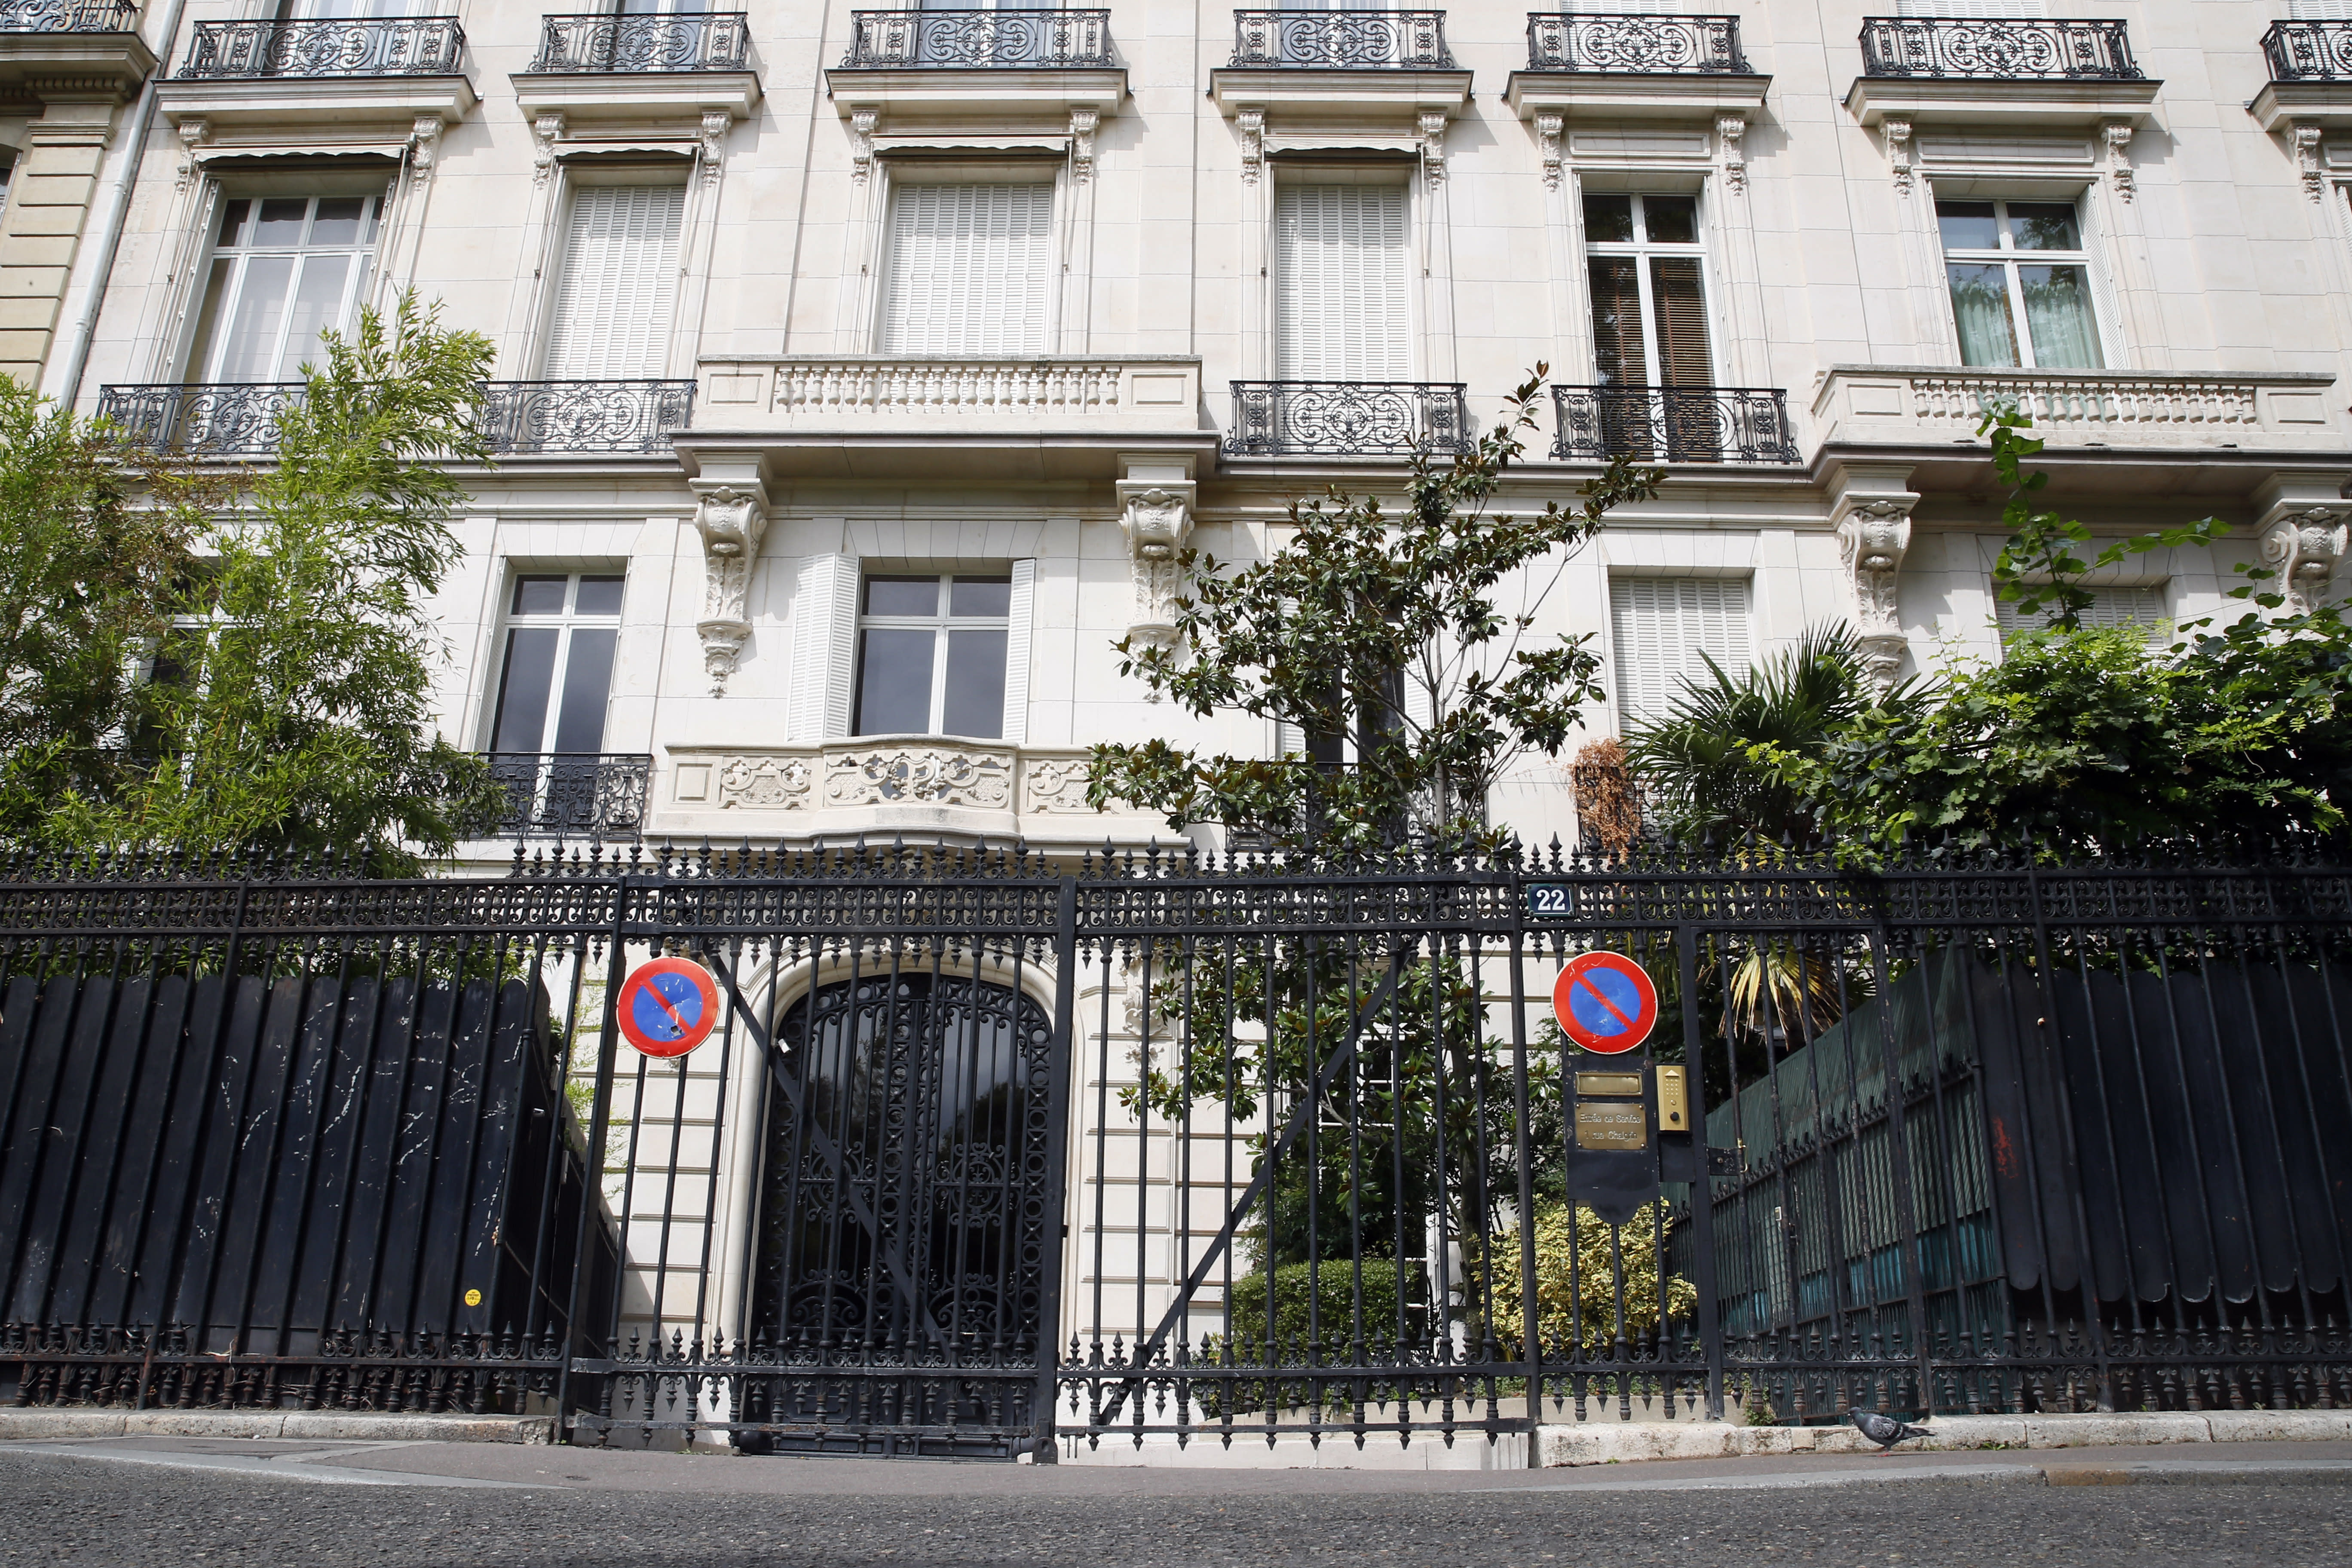 The entrance of an apartment building owned by Jeffrey Epstein in the 16th district in Paris, Tuesday, Aug. 13, 2019. France's government wants prosecutors to open an investigation into Jeffrey Epstein's links to France following his death in a Manhattan jail cell. U.S. authorities say Epstein had a residence in Paris and used a fake Austrian passport to travel to France in the 1980s. (AP Photo/Francois Mori)